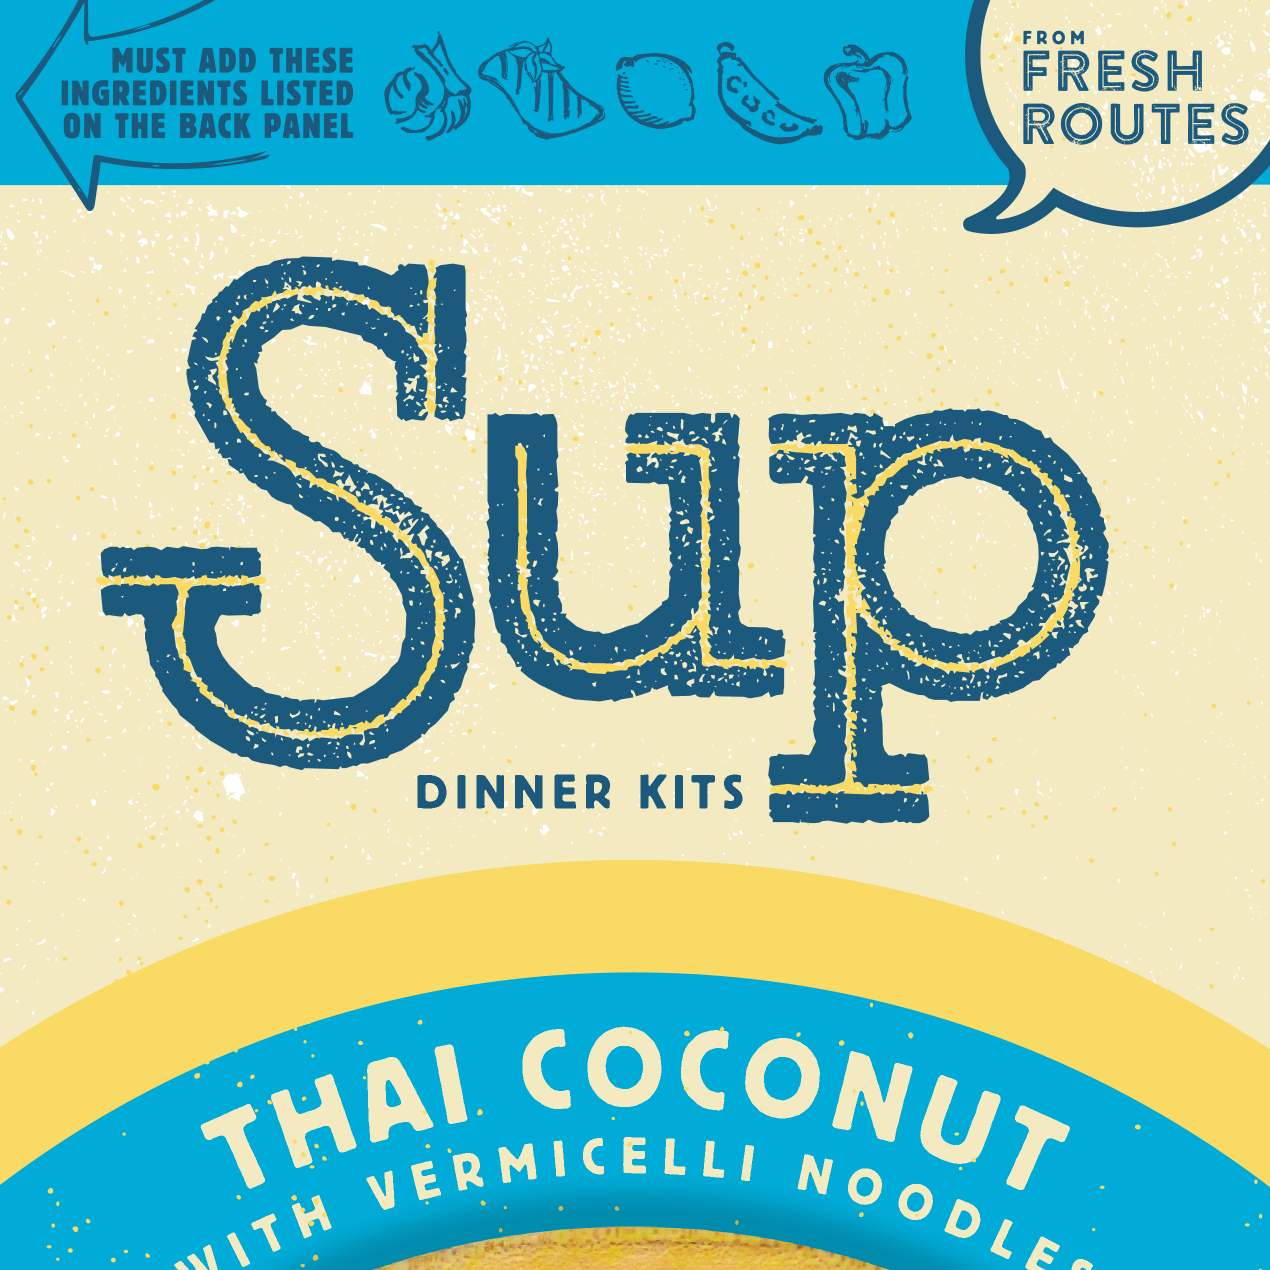 Fresh Routes SUP Dinner Kits